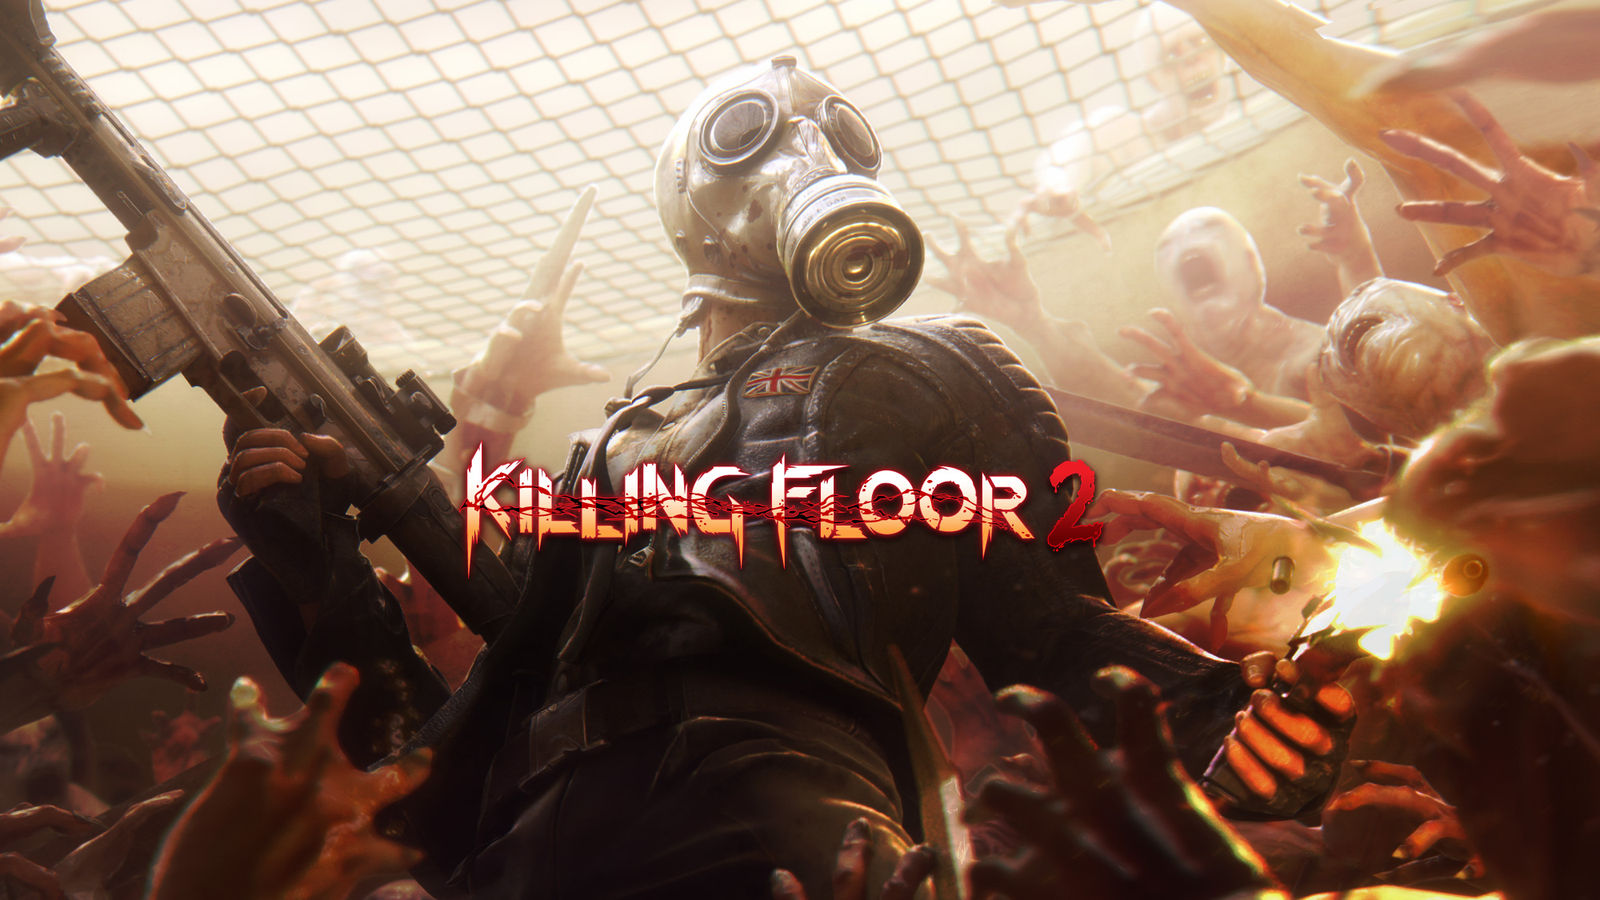 Killing Floor 2 (Steam) RU/CIS